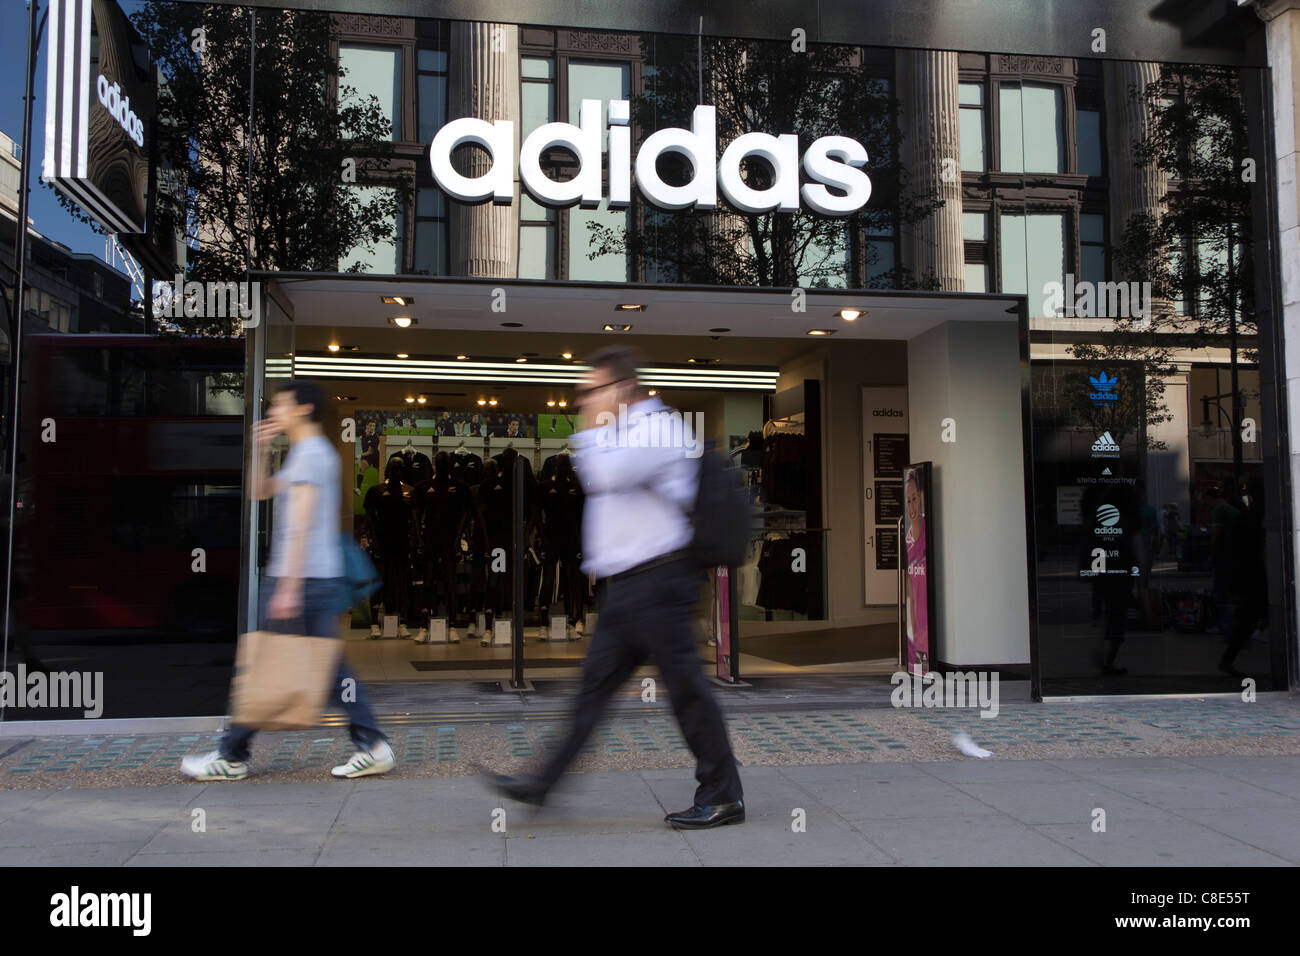 Oh amanecer Constitución  The Adidas store on Oxford Street, the busiest shopping street in Stock  Photo - Alamy